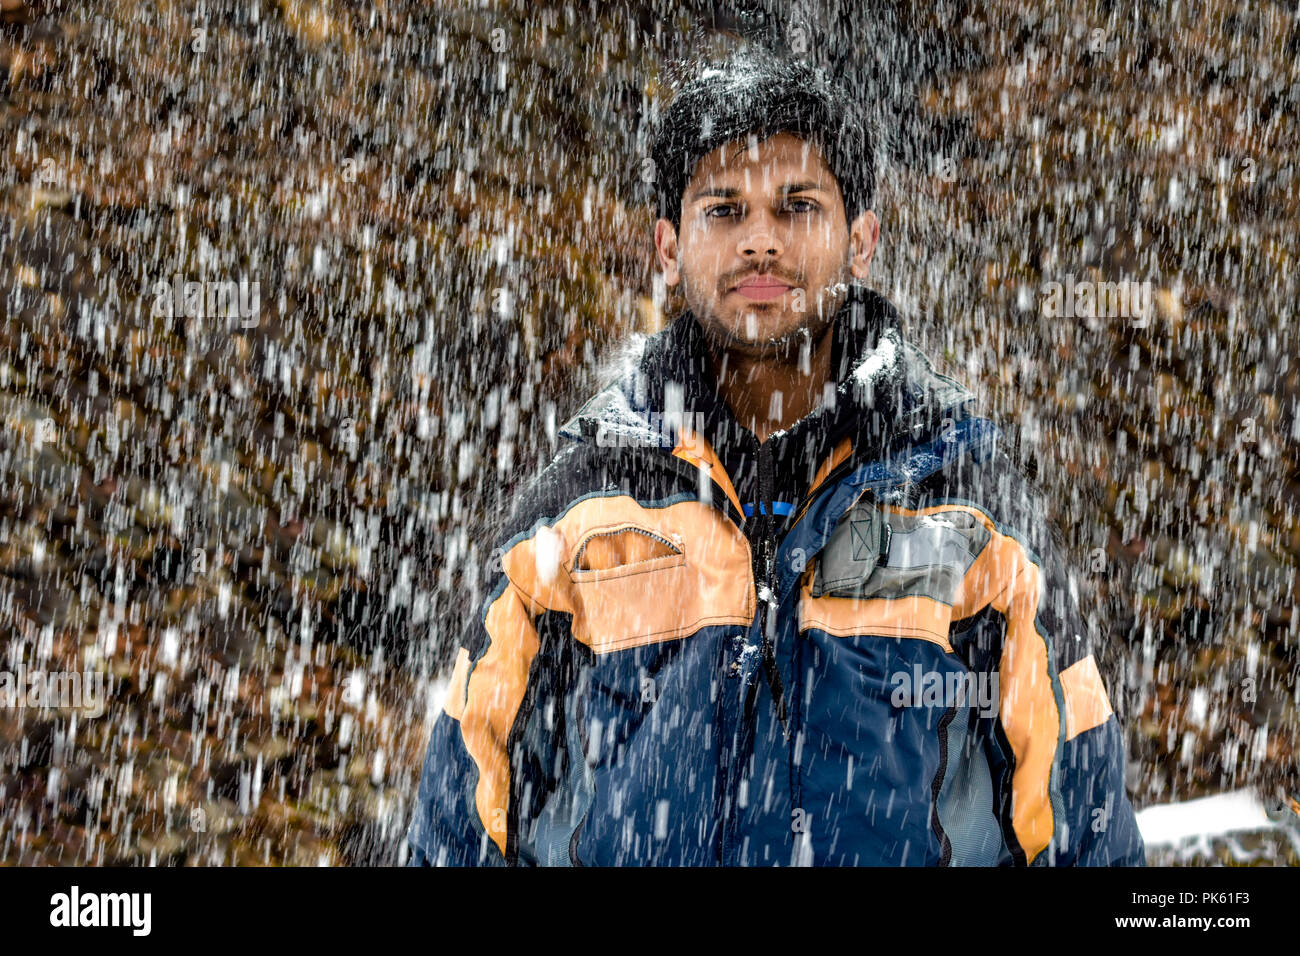 Young, Fair and Handsome Indian boy in early 20s in skiing costume, wearing snowsuit, standing still and posing in neutral mood during heavy snowfall - Stock Image